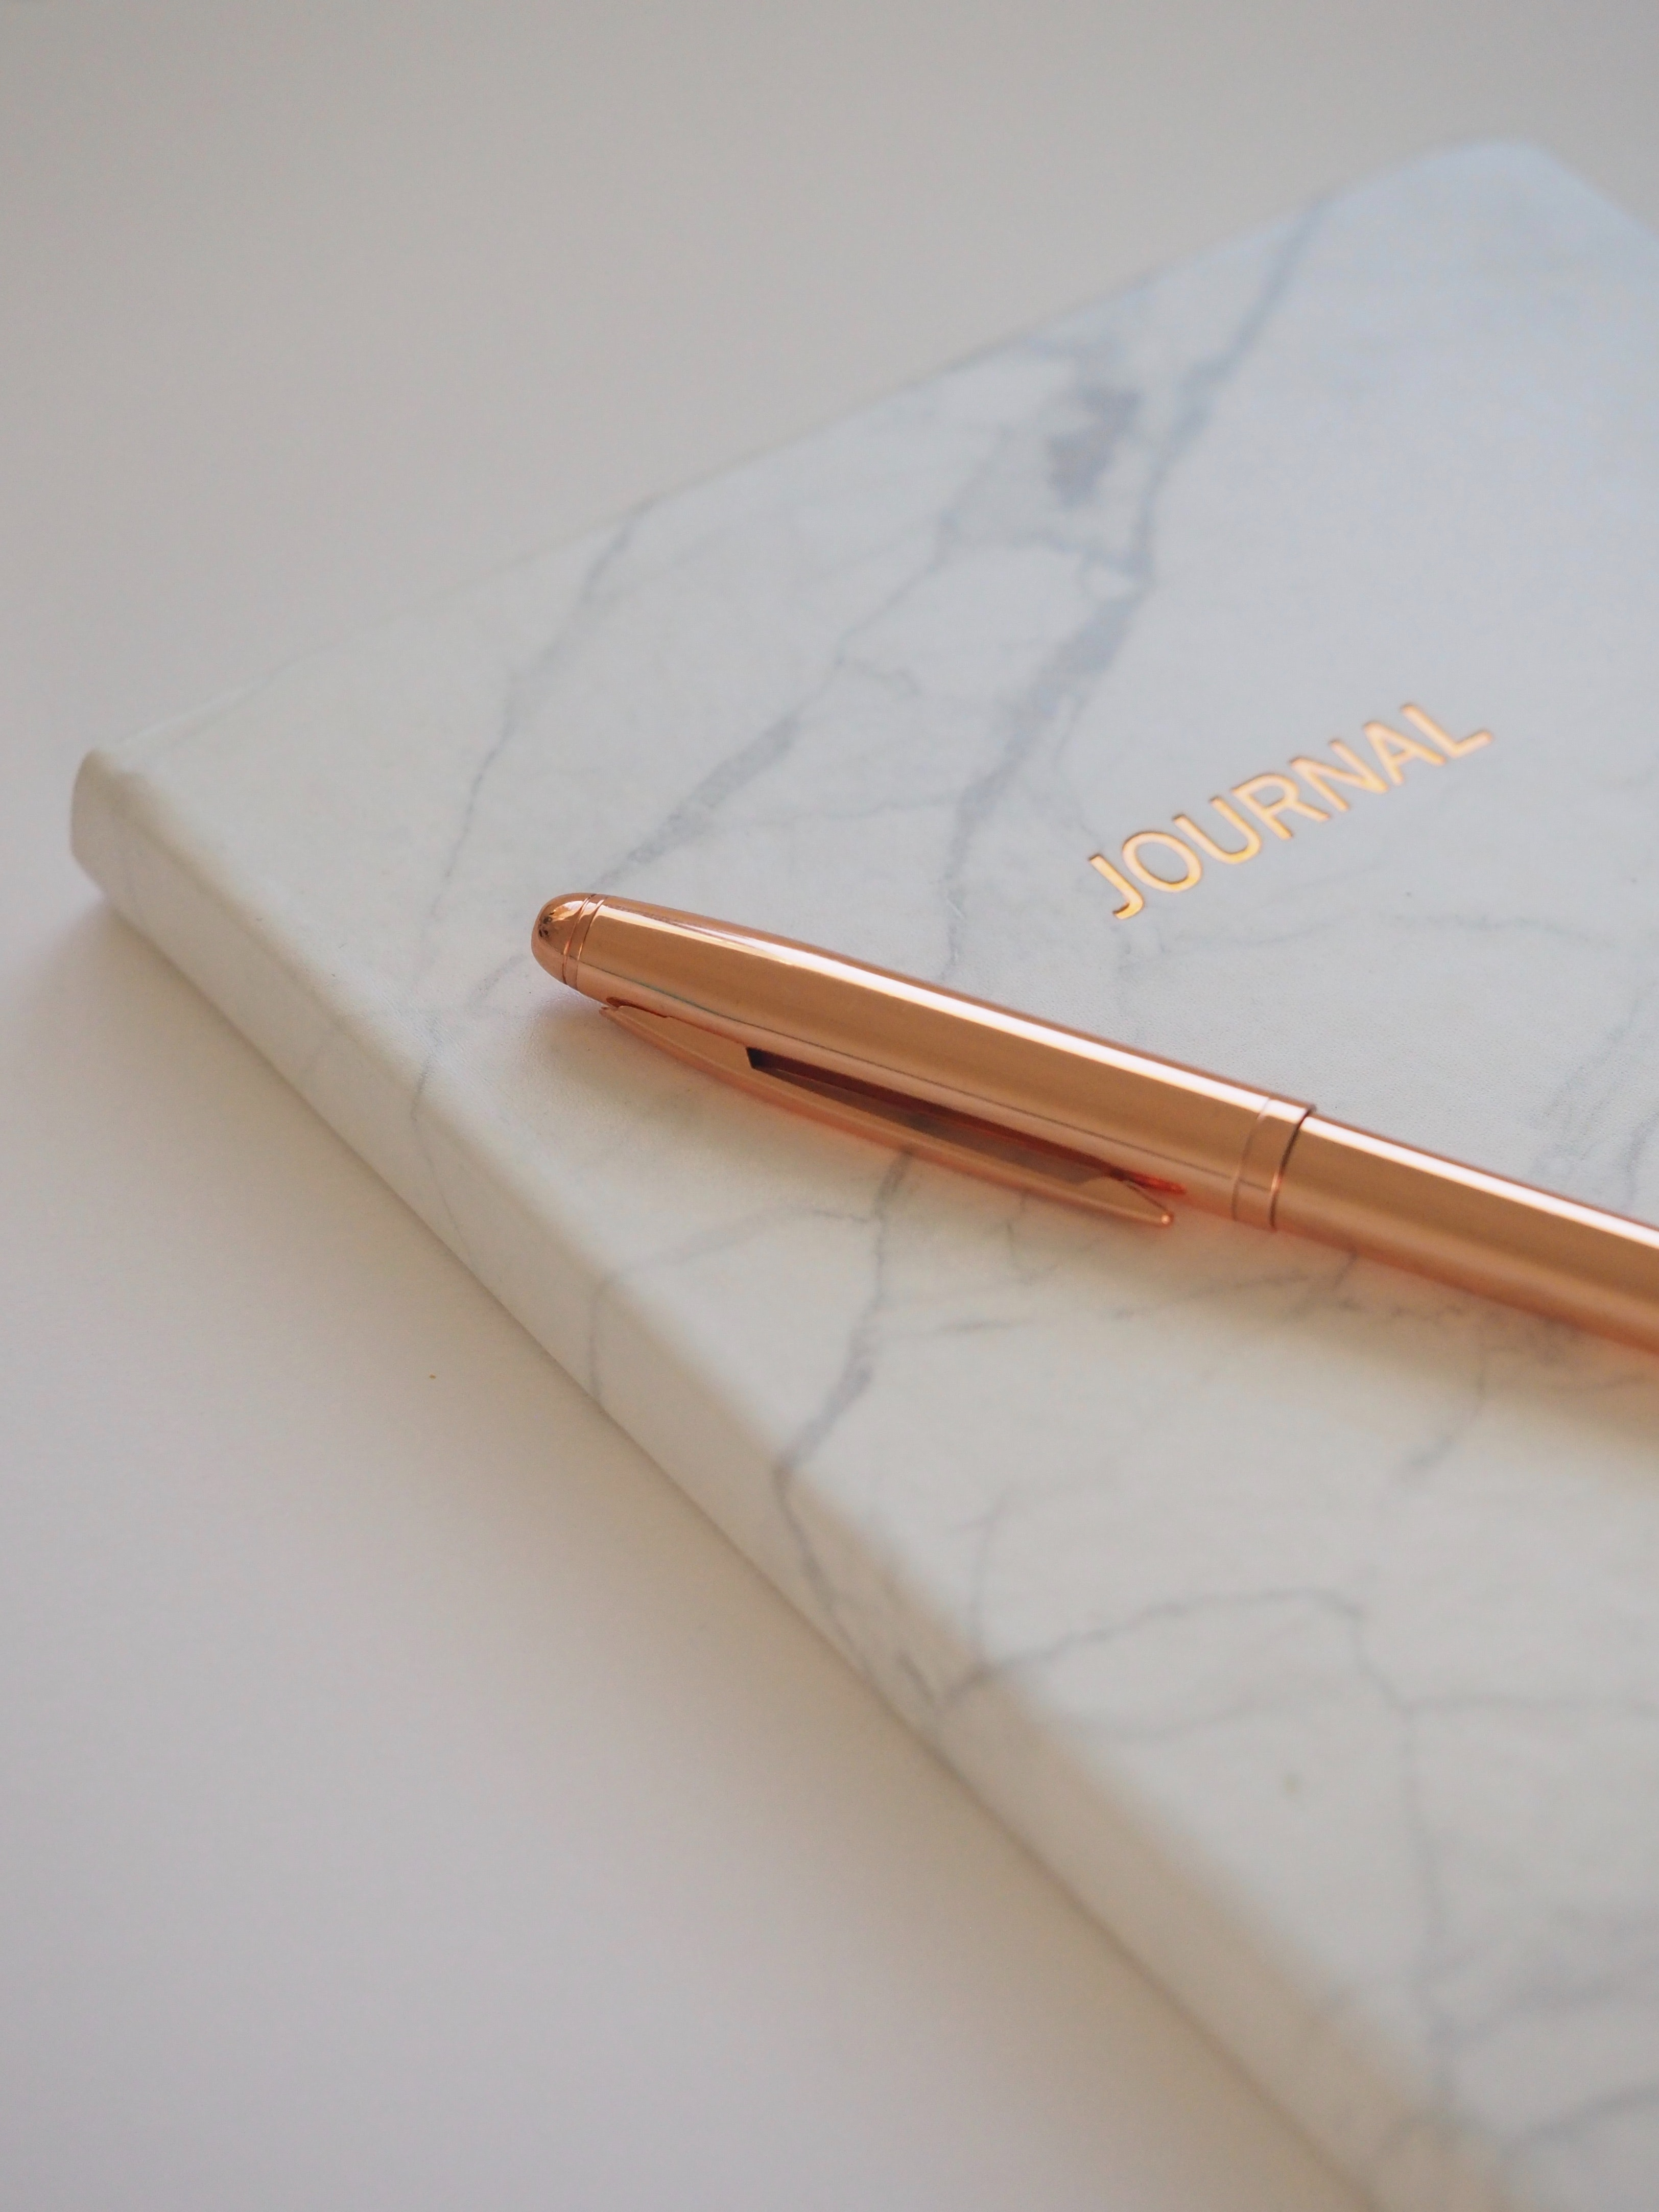 Gold pen on journal book photo